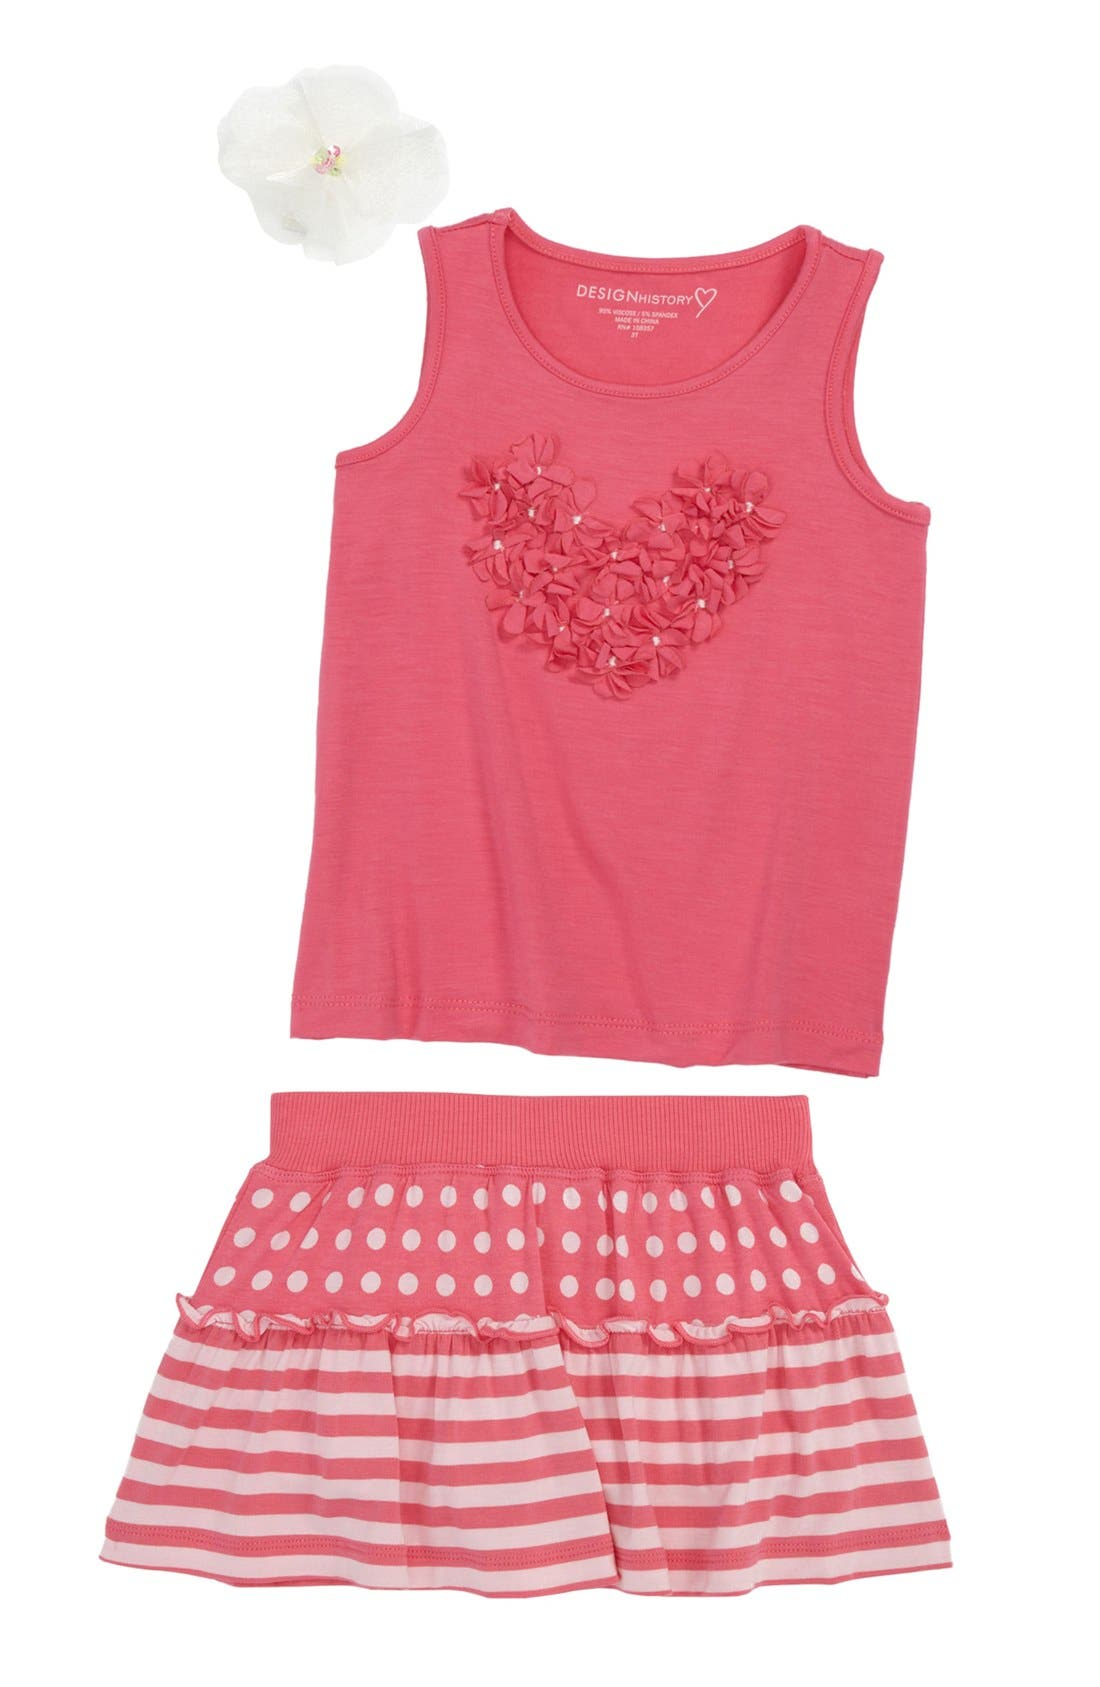 Main Image - Design History Tank Top & Skort & PLH Bows & Laces Hair Clip (Toddler)